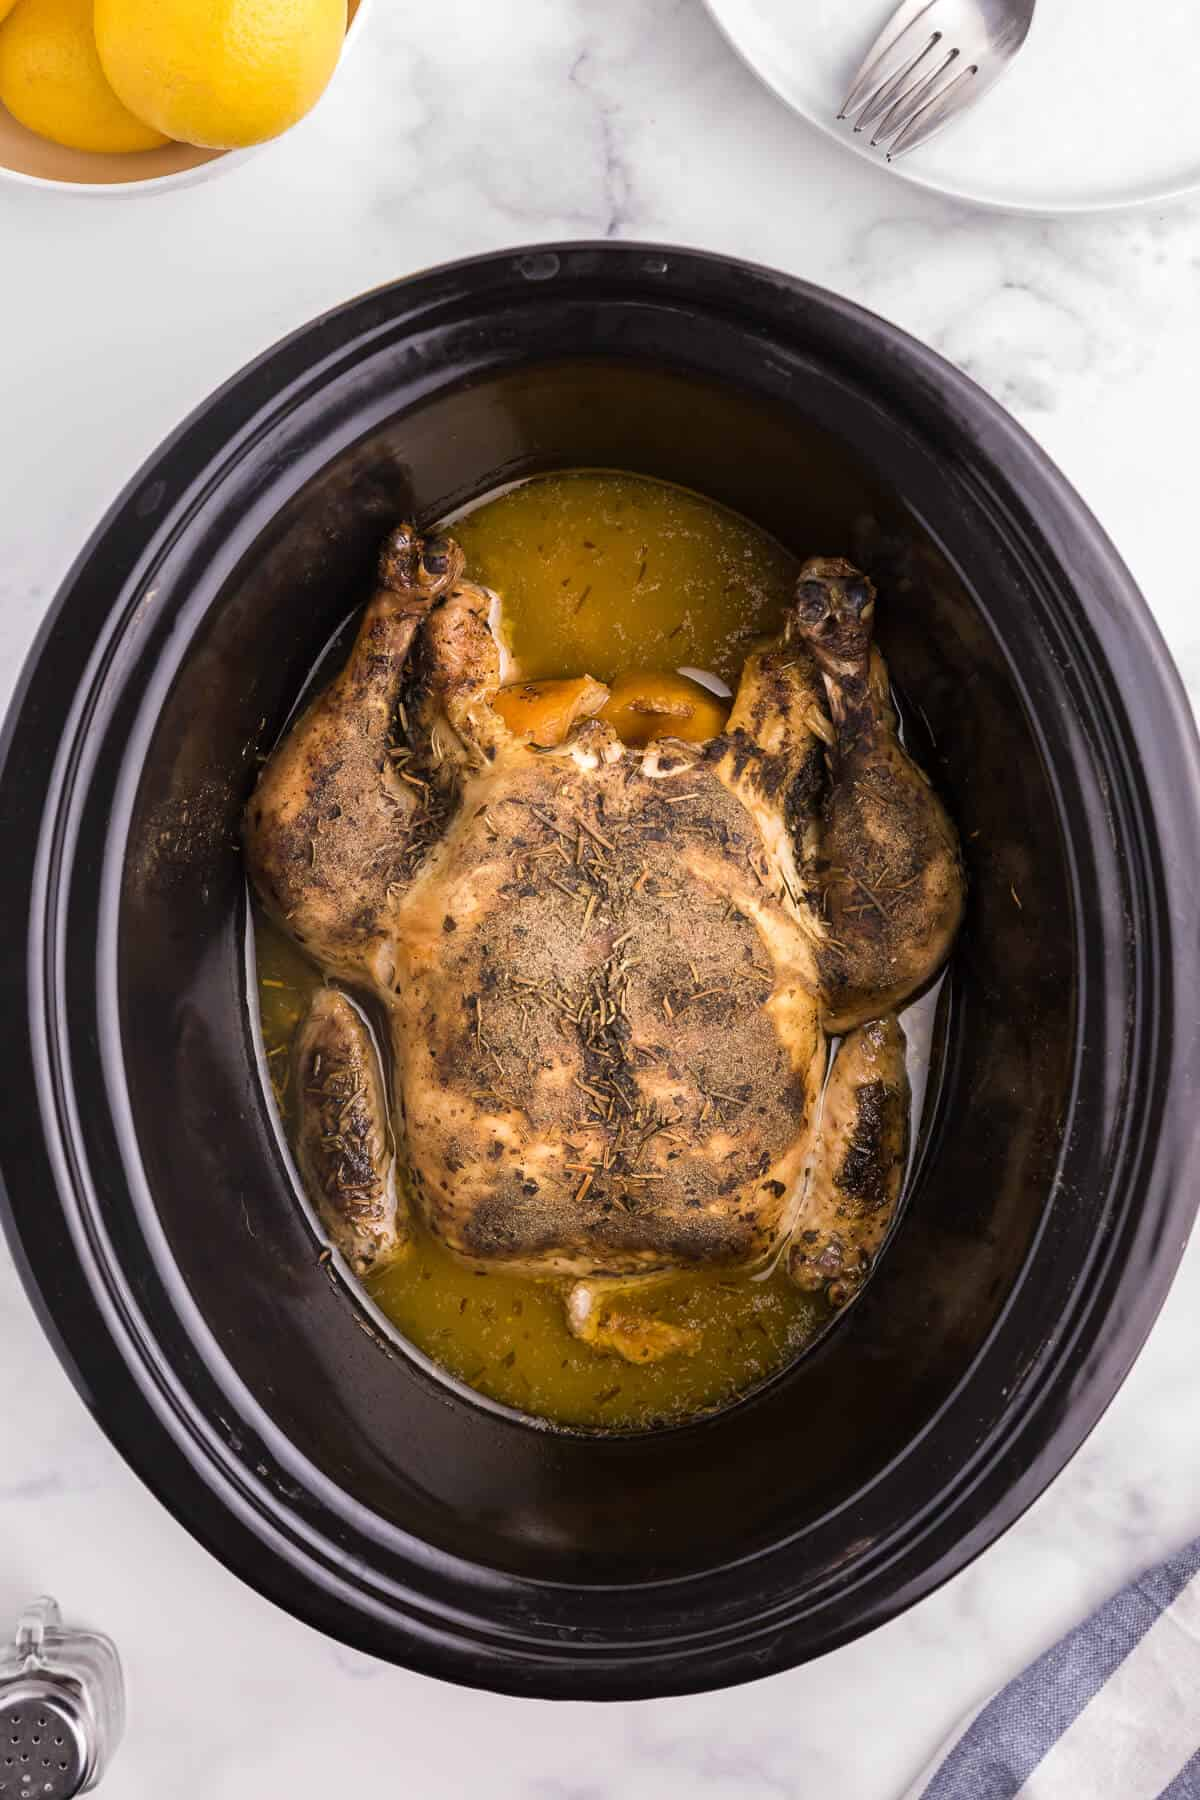 Lemon Herb Slow Cooker Chicken - Roast a whole chicken in your Crockpot! This easy chicken recipe is so much juicier with lemon juice and a succulent herb blend.